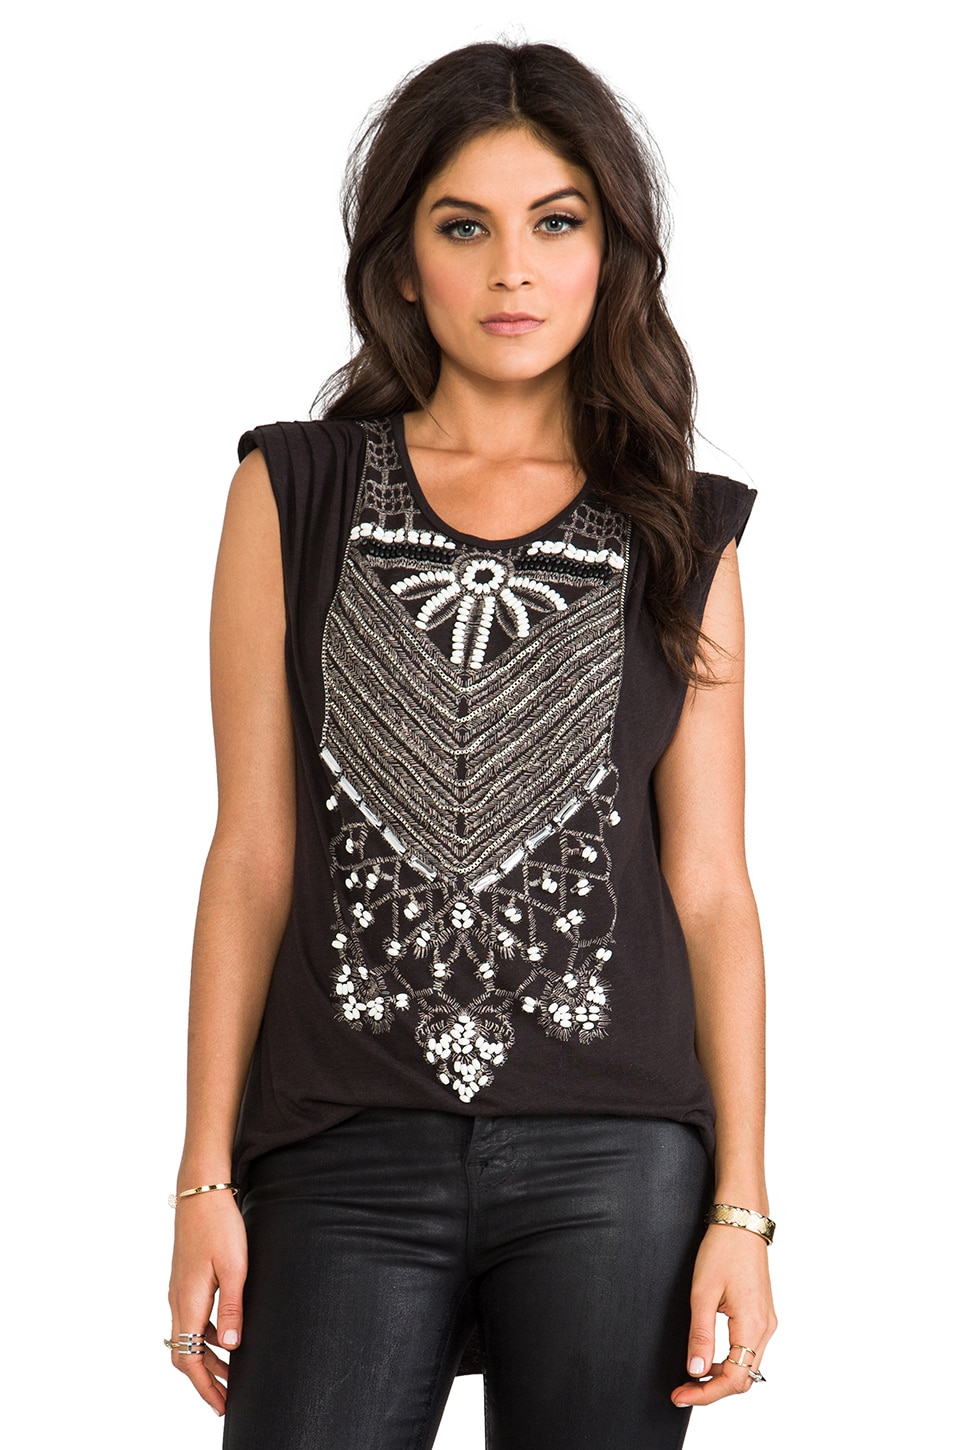 Sass & Bide Vice Versa Tank in Faded Black